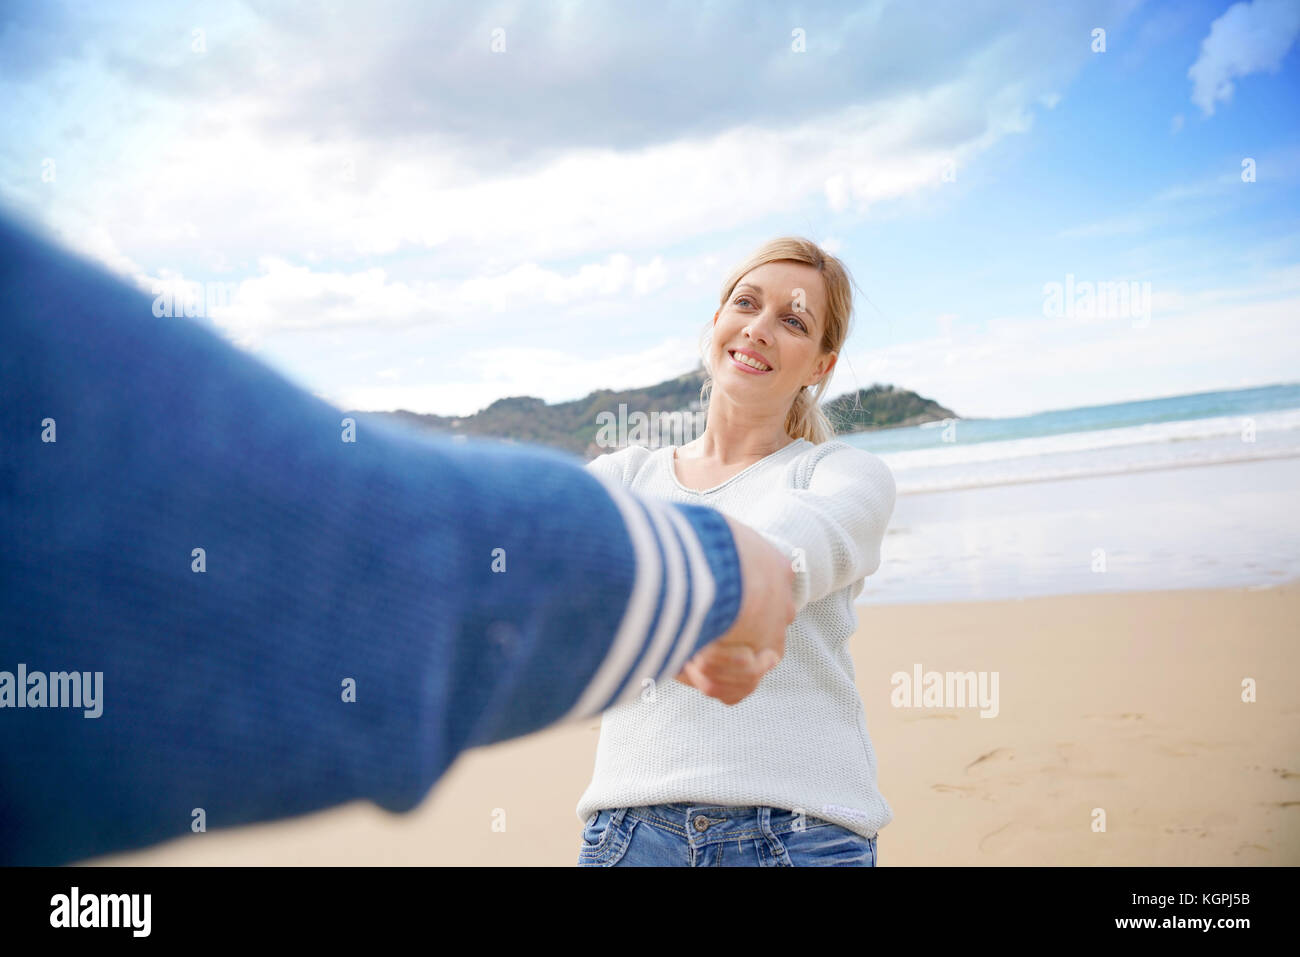 Middle-aged couple on the beach having fun turning around - Stock Image